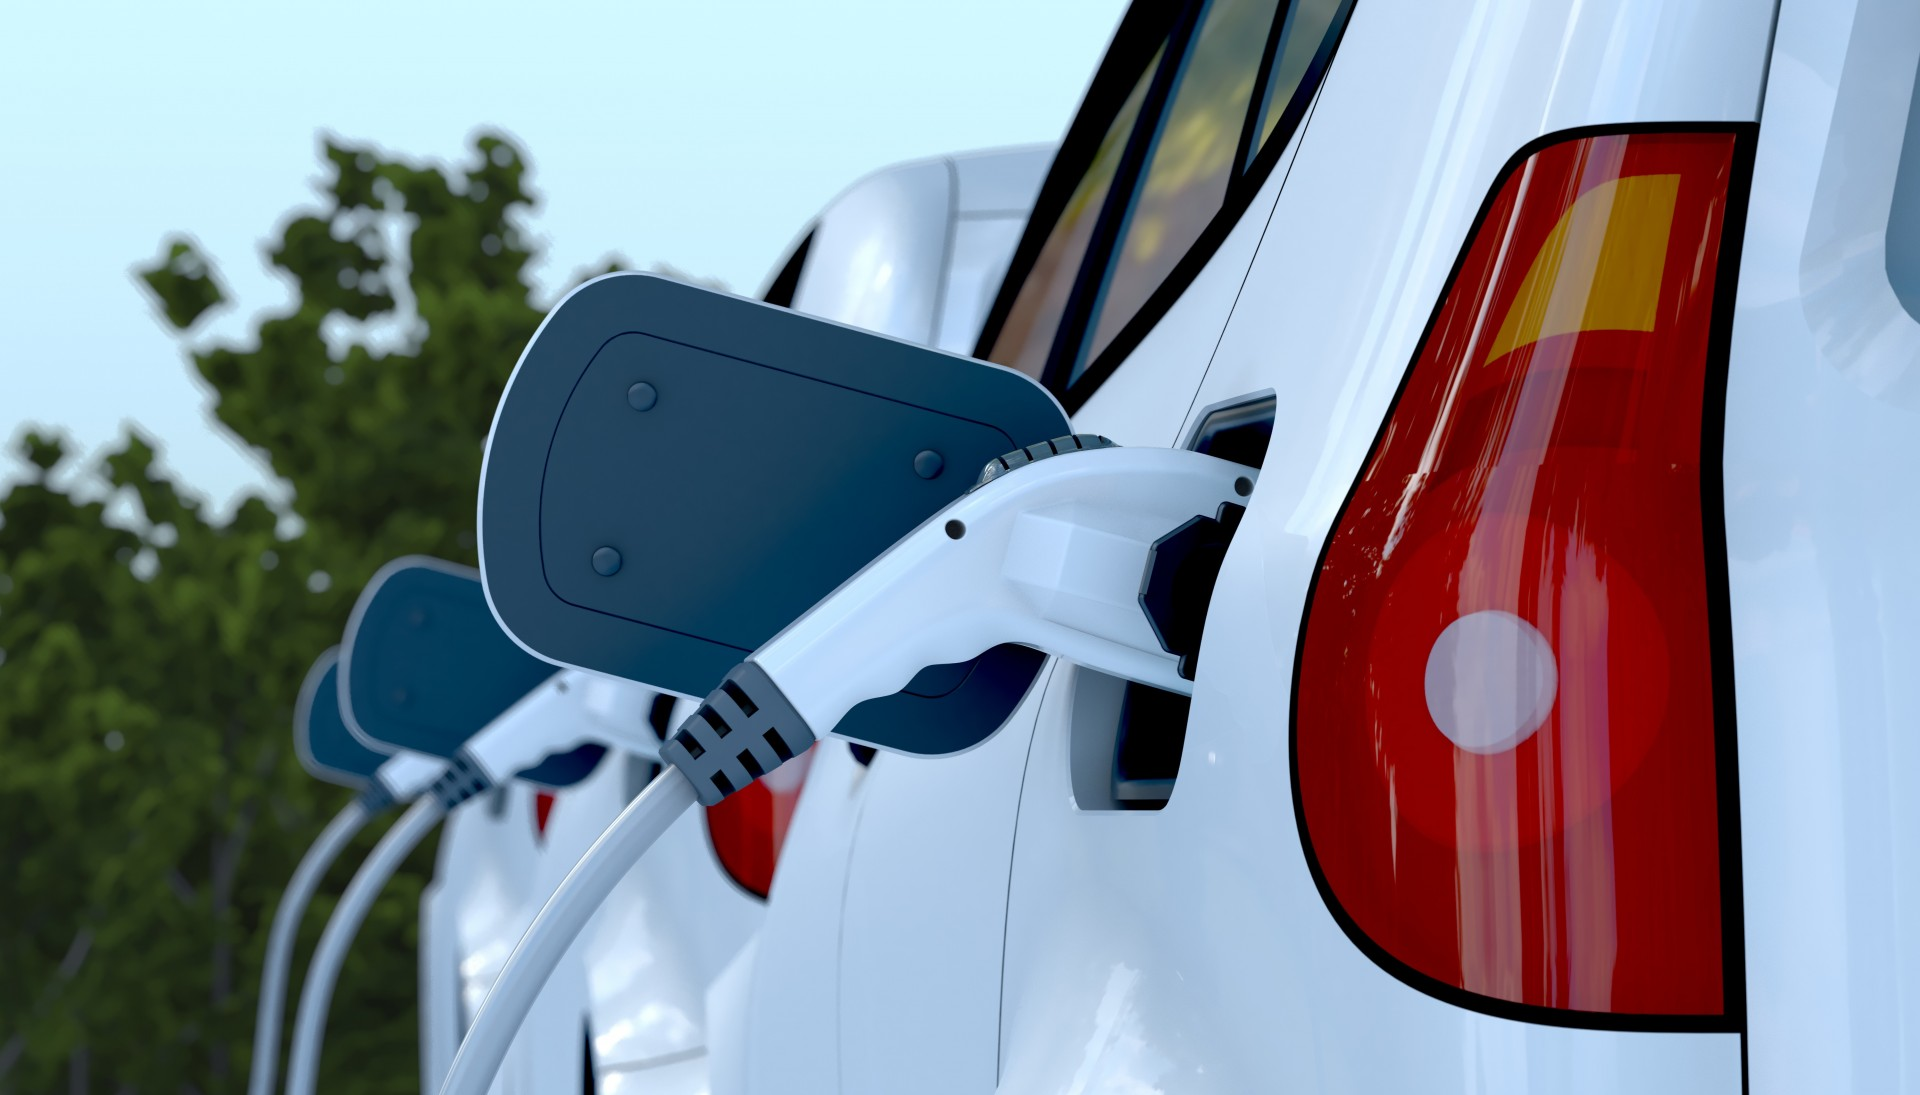 Sourcewell is proud to serve as your sustainability partner, offering a variety of electric vehicle and charging station solutions.